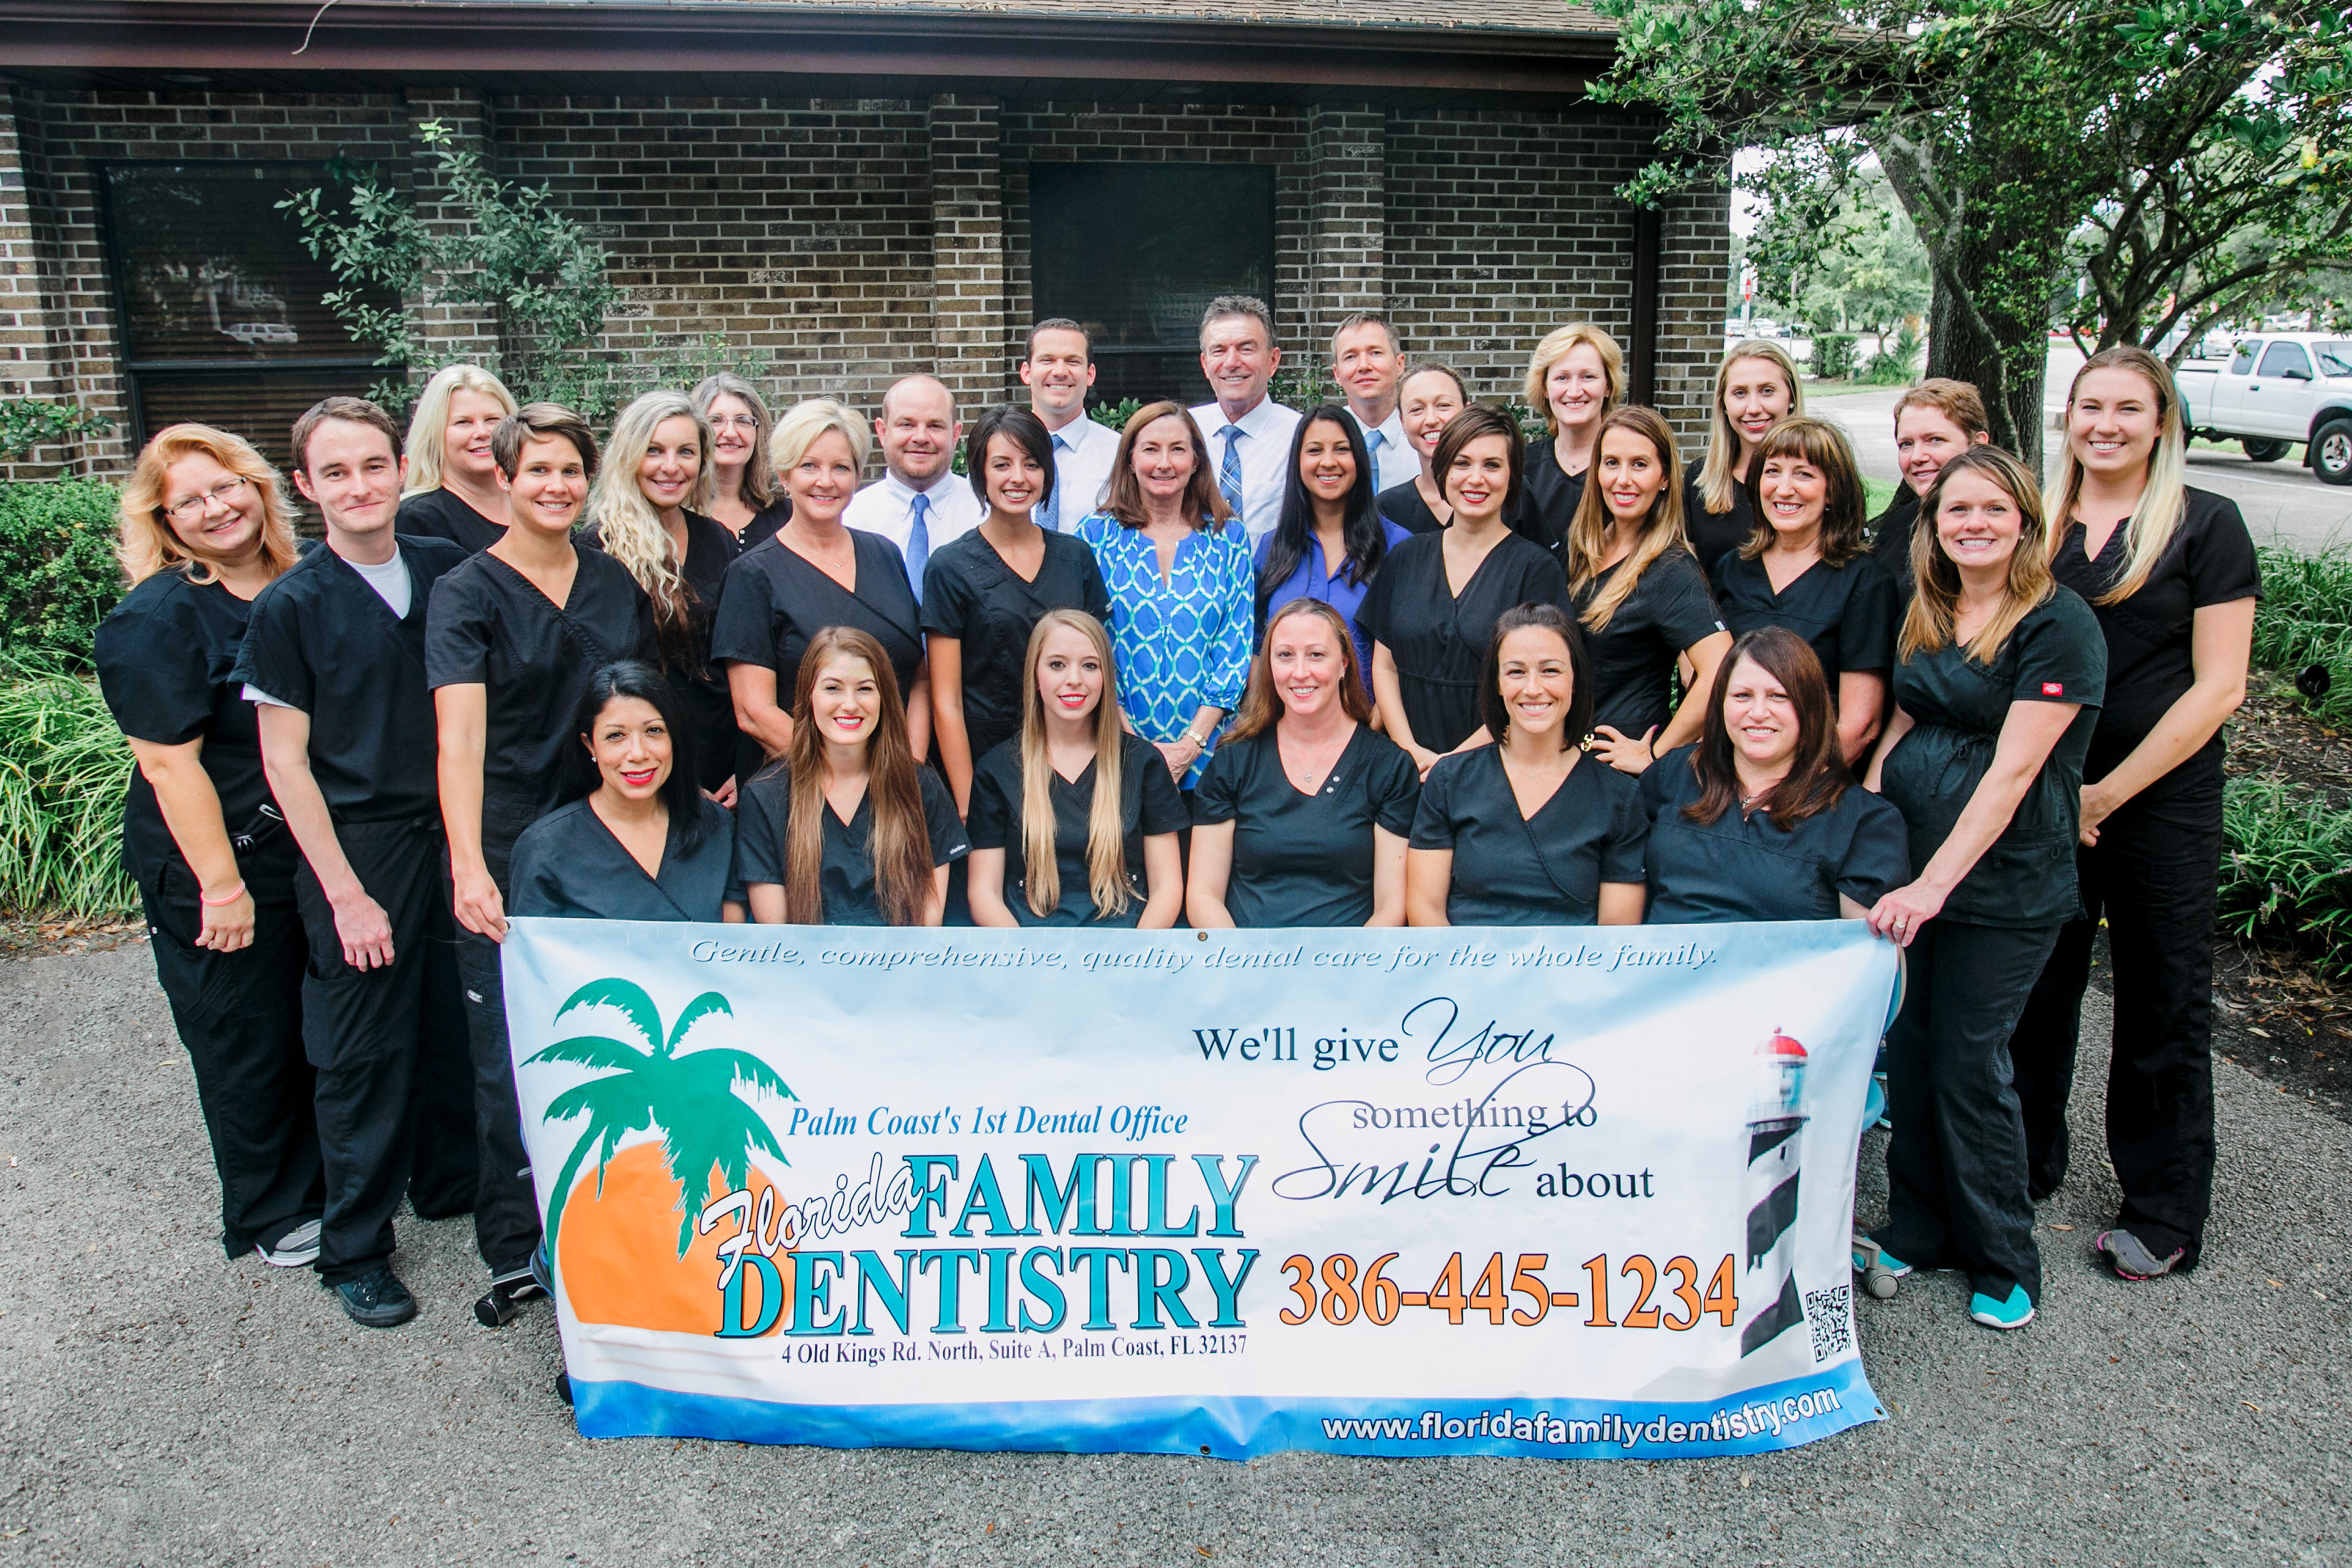 Florida Family Dentistry: 40 years of healthier smiles